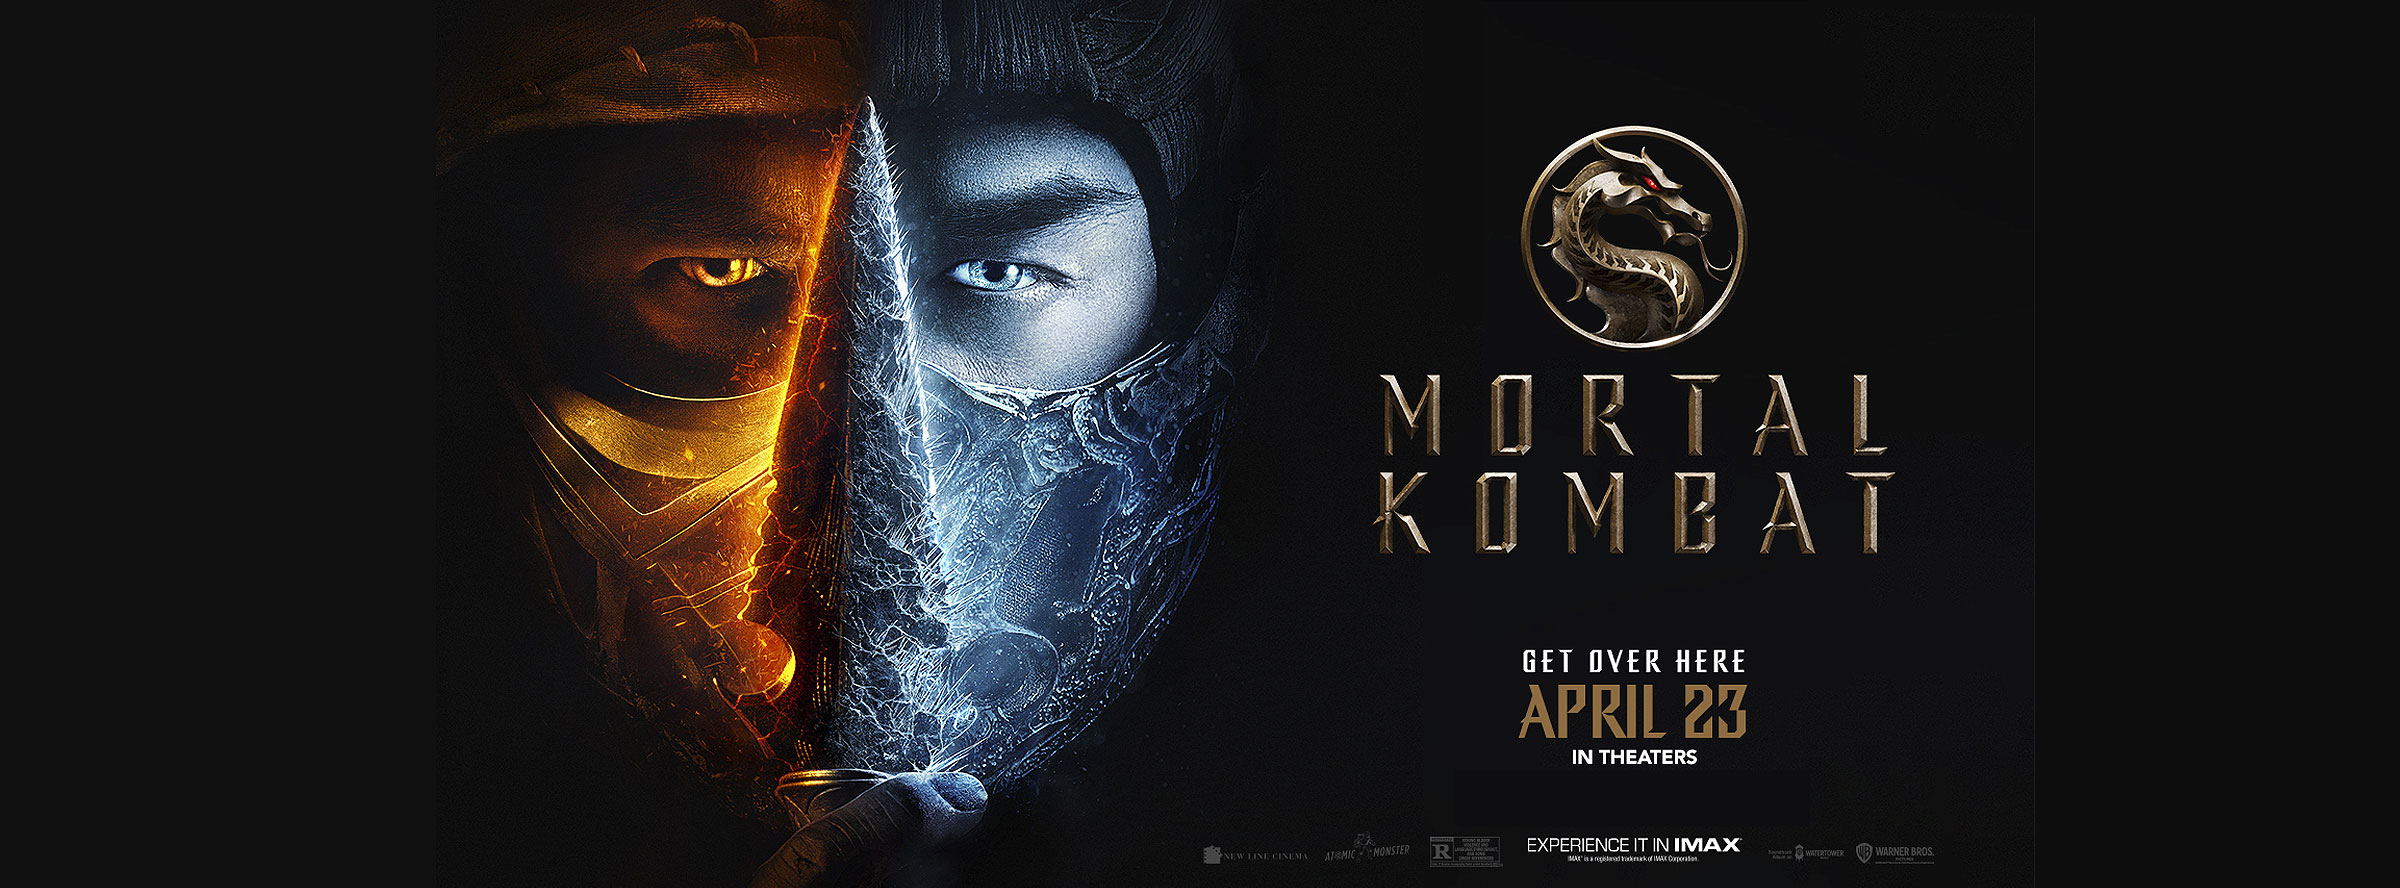 Mortal-Kombat-Trailer-and-Info